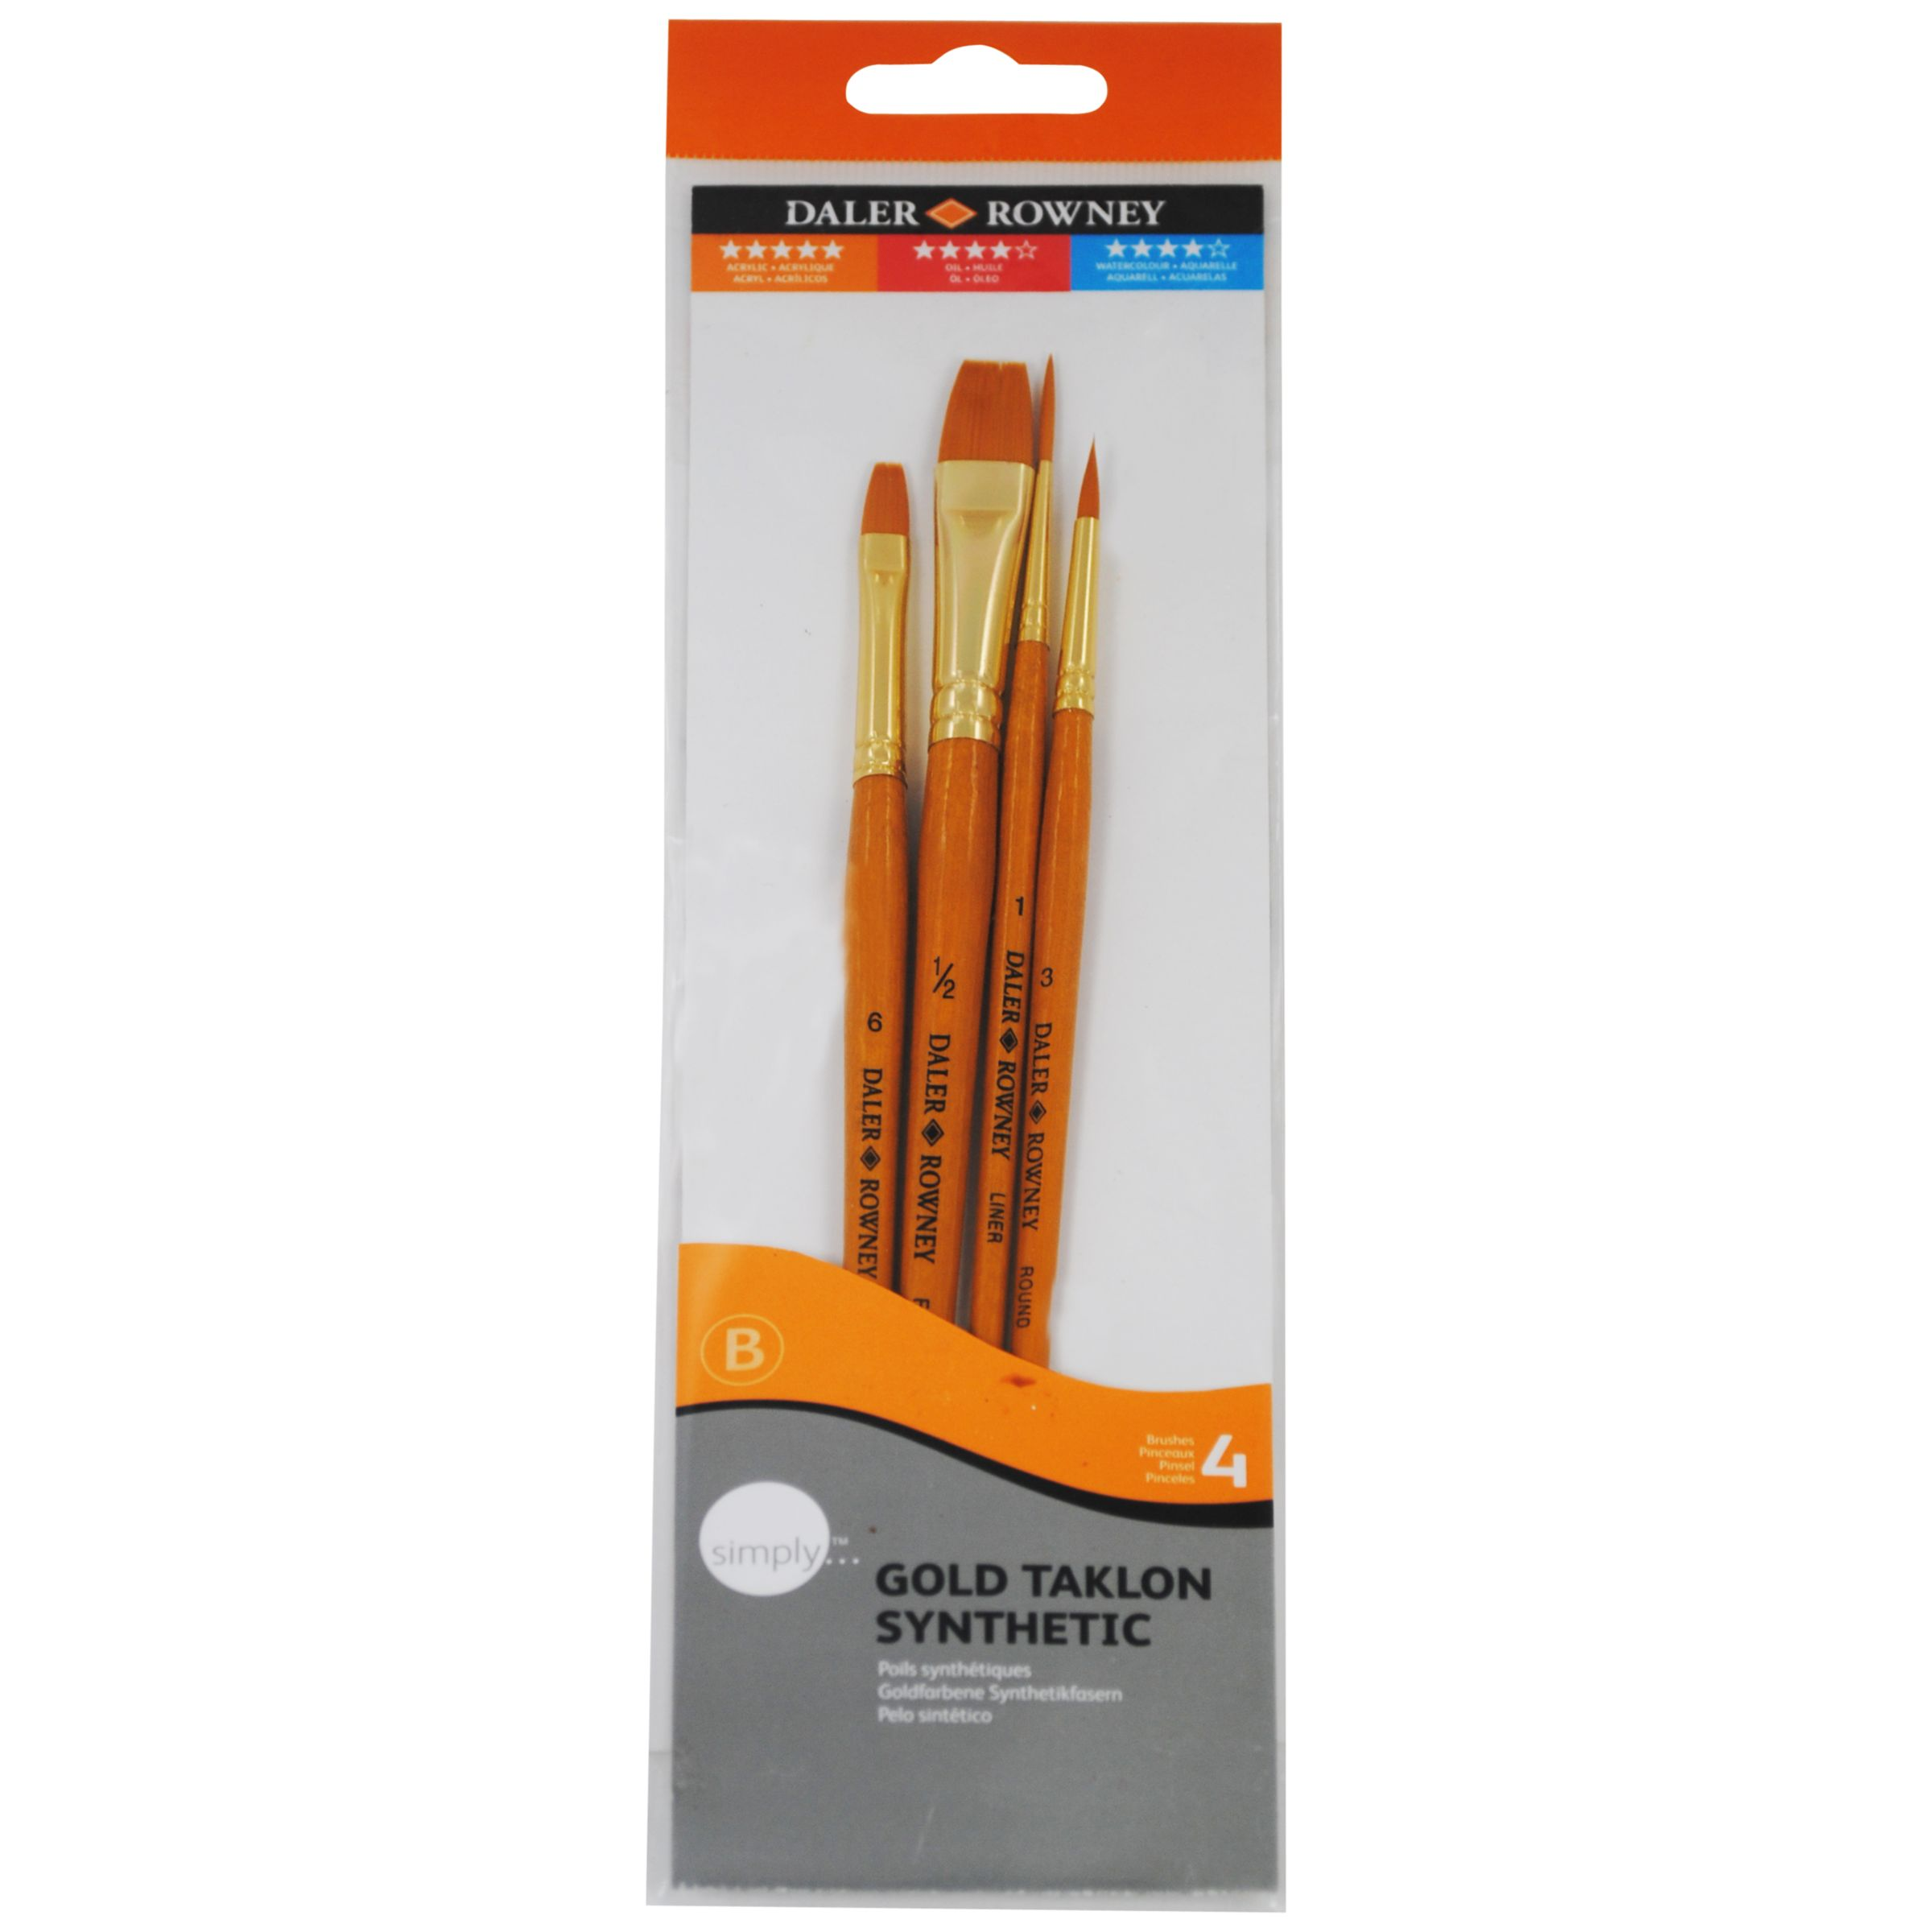 Daler-Rowney Gold Taklon Short Handled Brushes, Set of 4